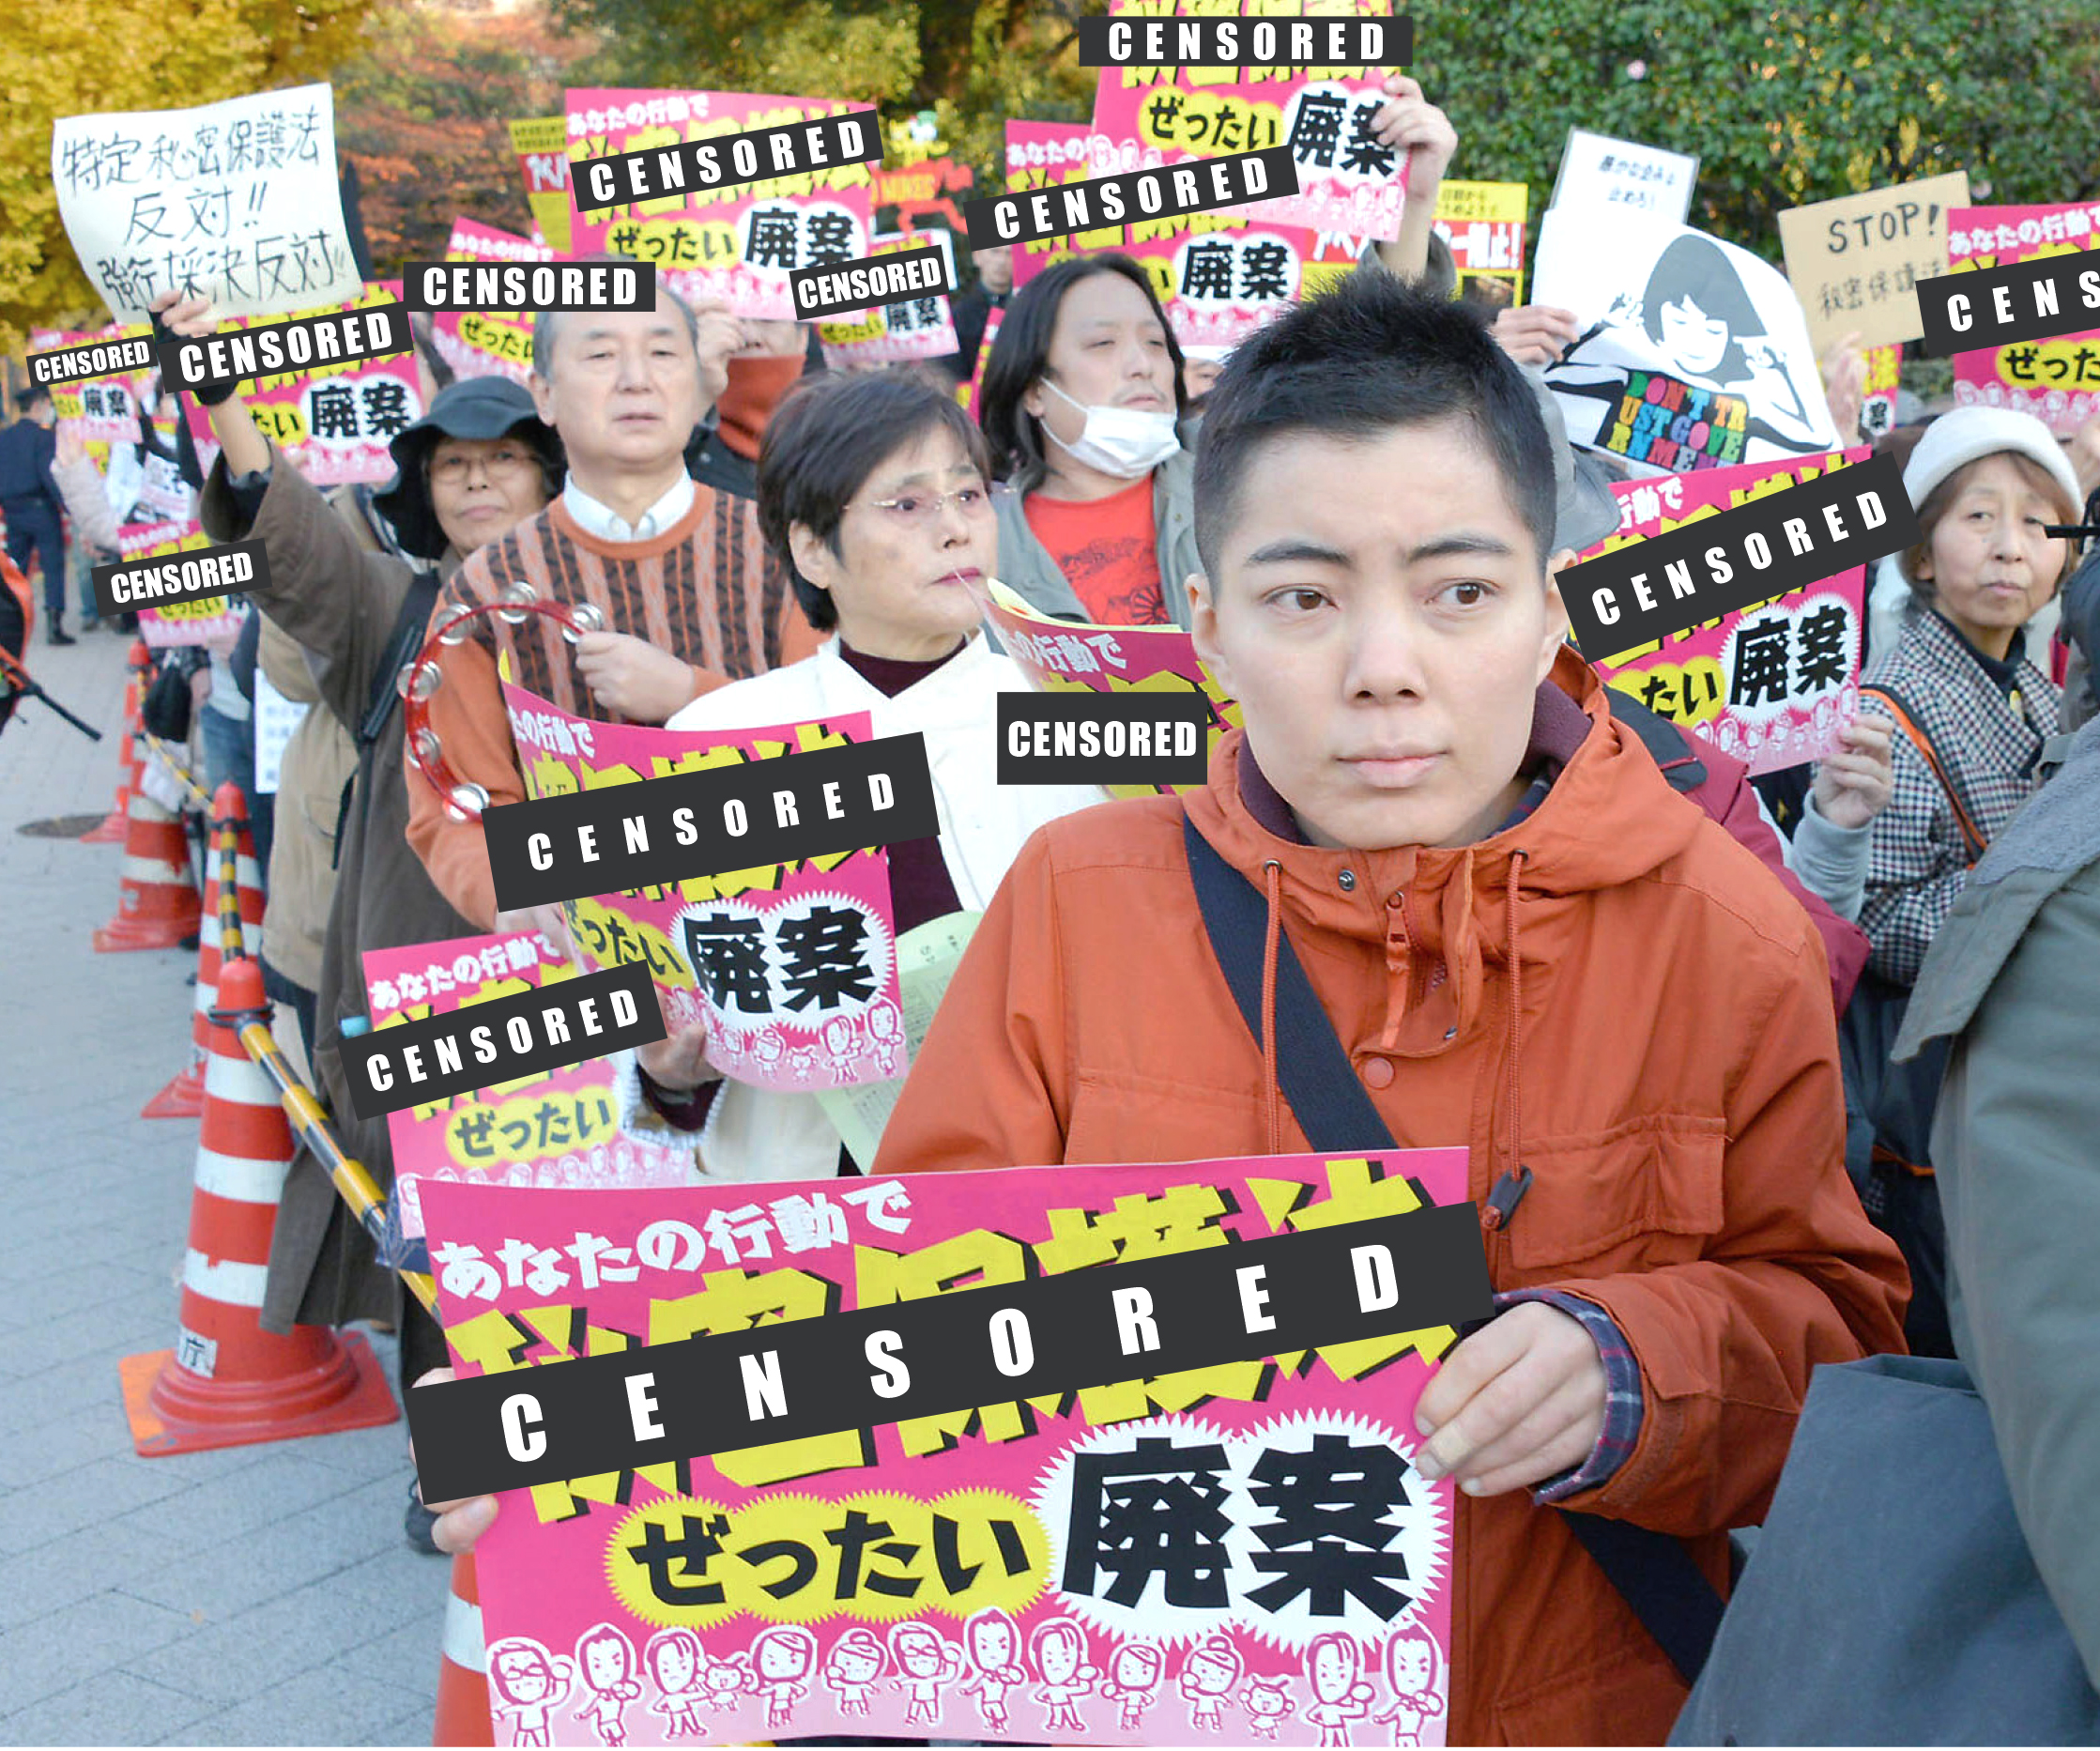 I know a secret ... : Under the recently enacted state secrets law, could censorship like this be the future for the reporting of subjects deemed sensitive by the Japanese government? | AP/MODIFIED BY THE JAPAN TIMES